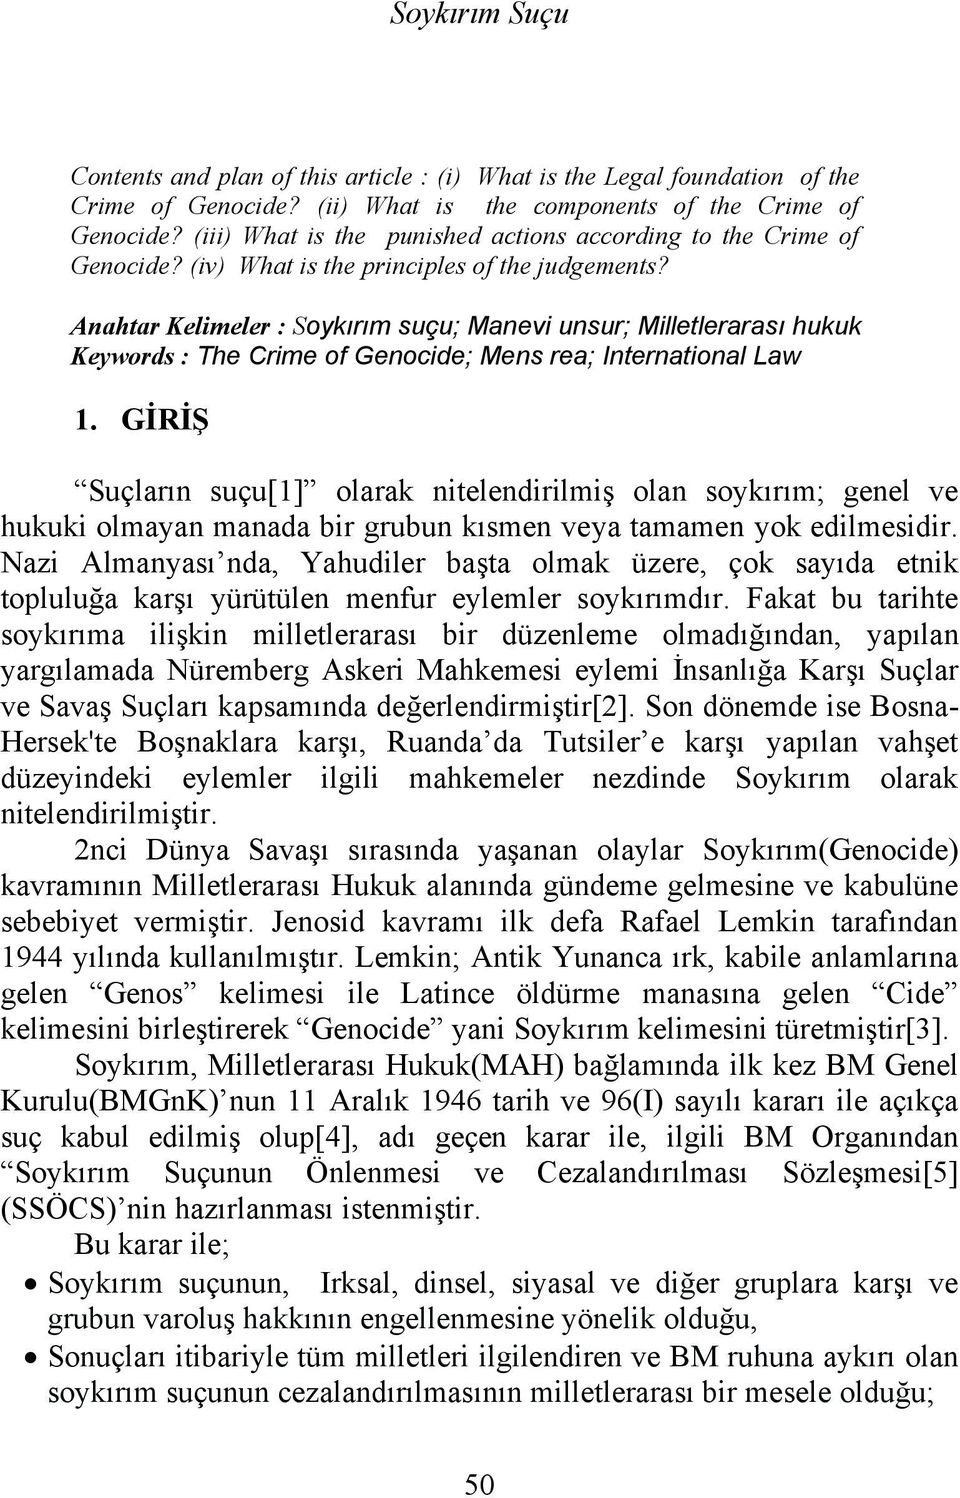 Anahtar Kelimeler : Soykırım suçu; Manevi unsur; Milletlerarası hukuk Keywords : The Crime of Genocide; Mens rea; International Law 1.